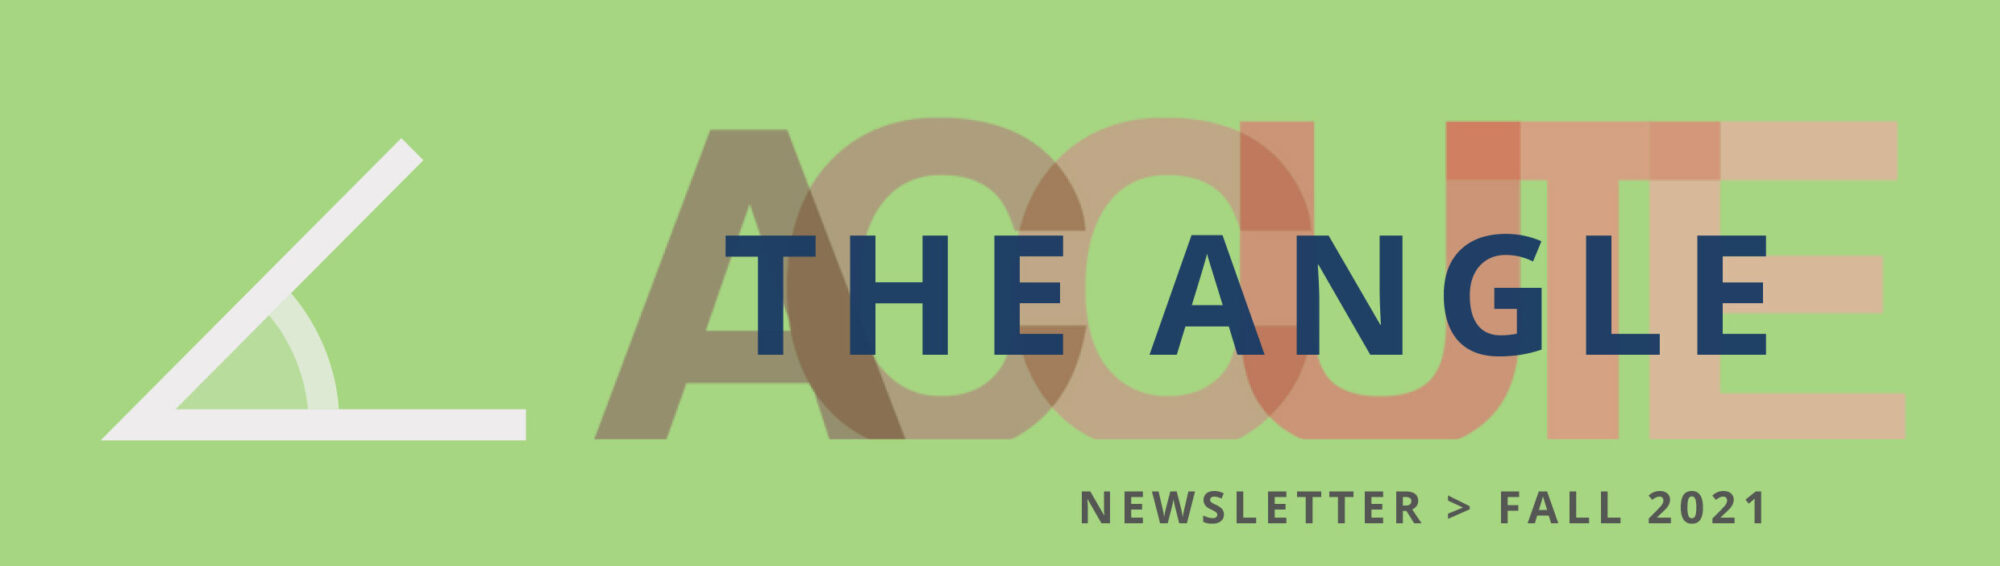 Newsletter Header Graphic for The Angle Fall 2021 issue by ACCUTE